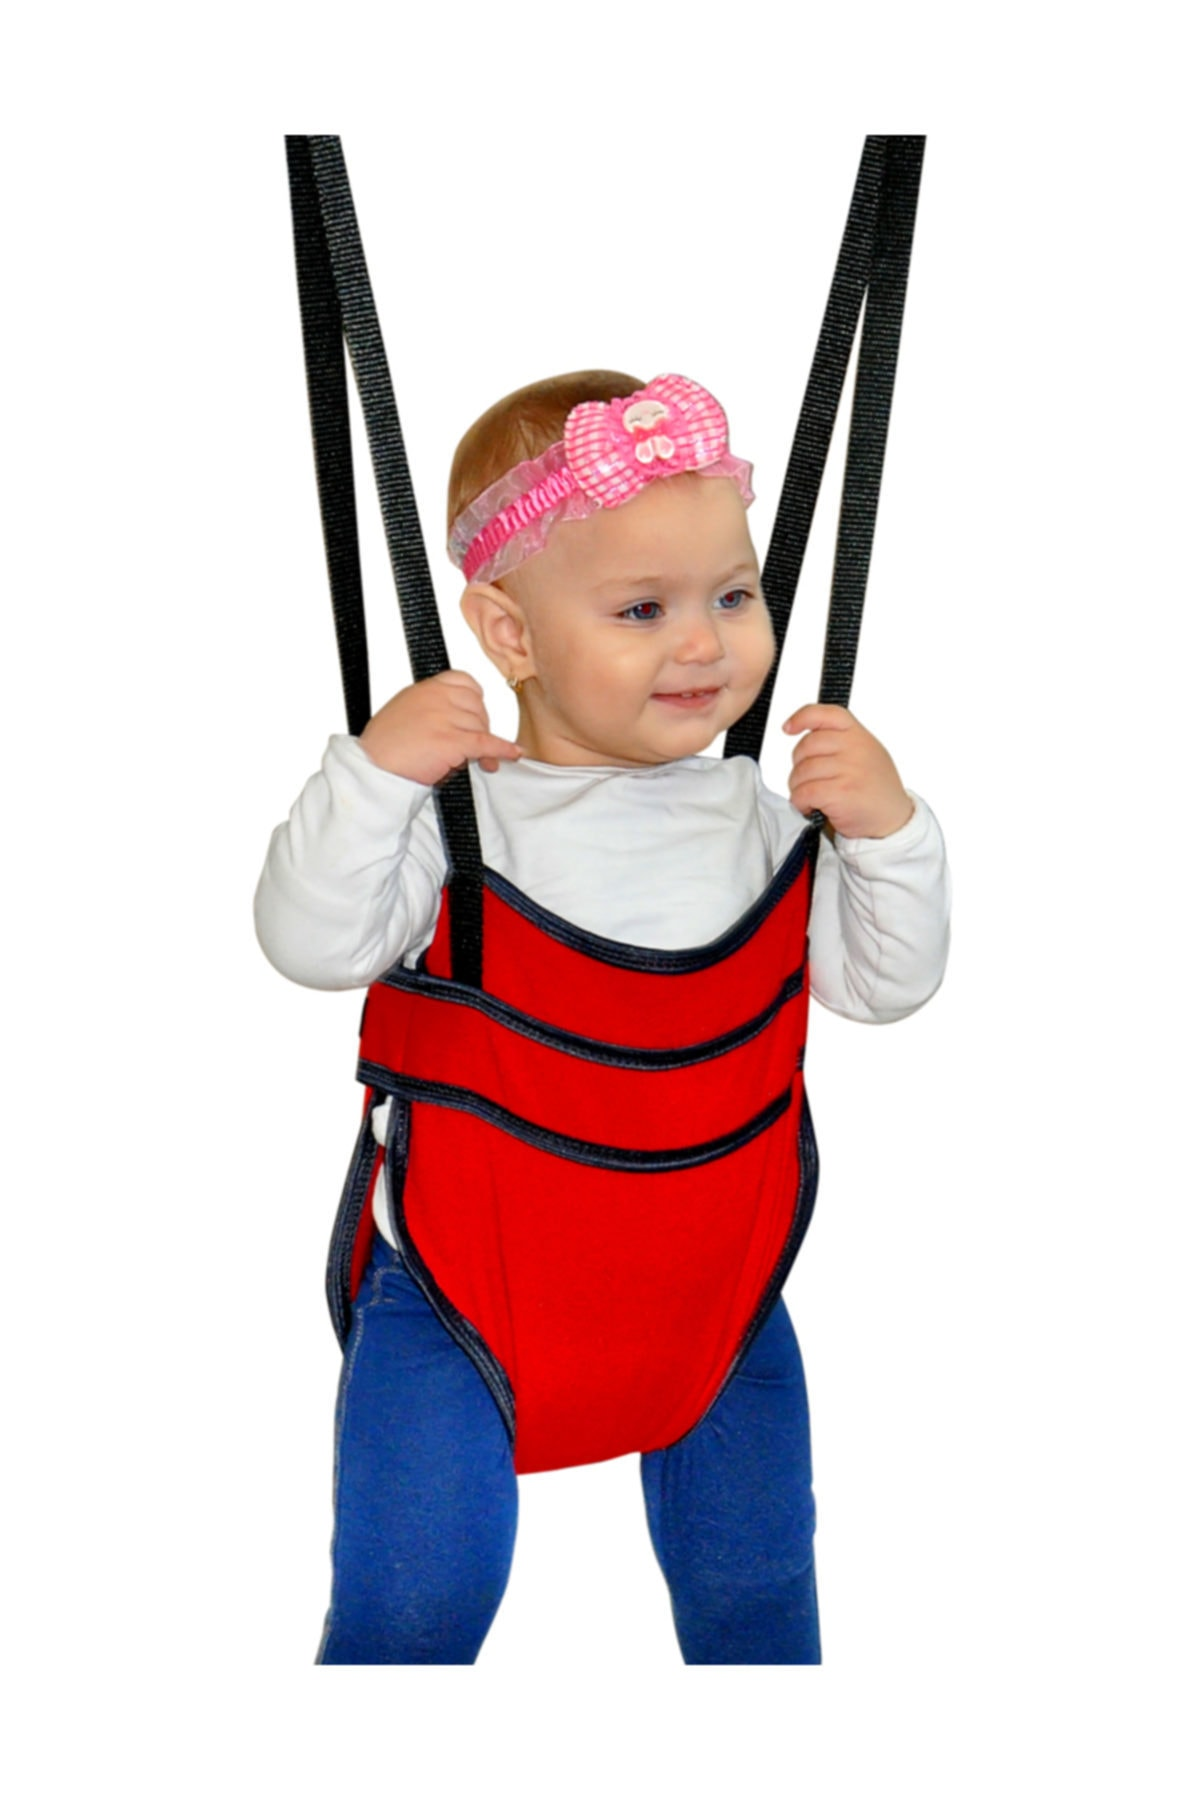 Bella Baby Whoops Pogo stick Pendant Spring Walker Safety Arched Ceiling Hanging Spring Hoppy